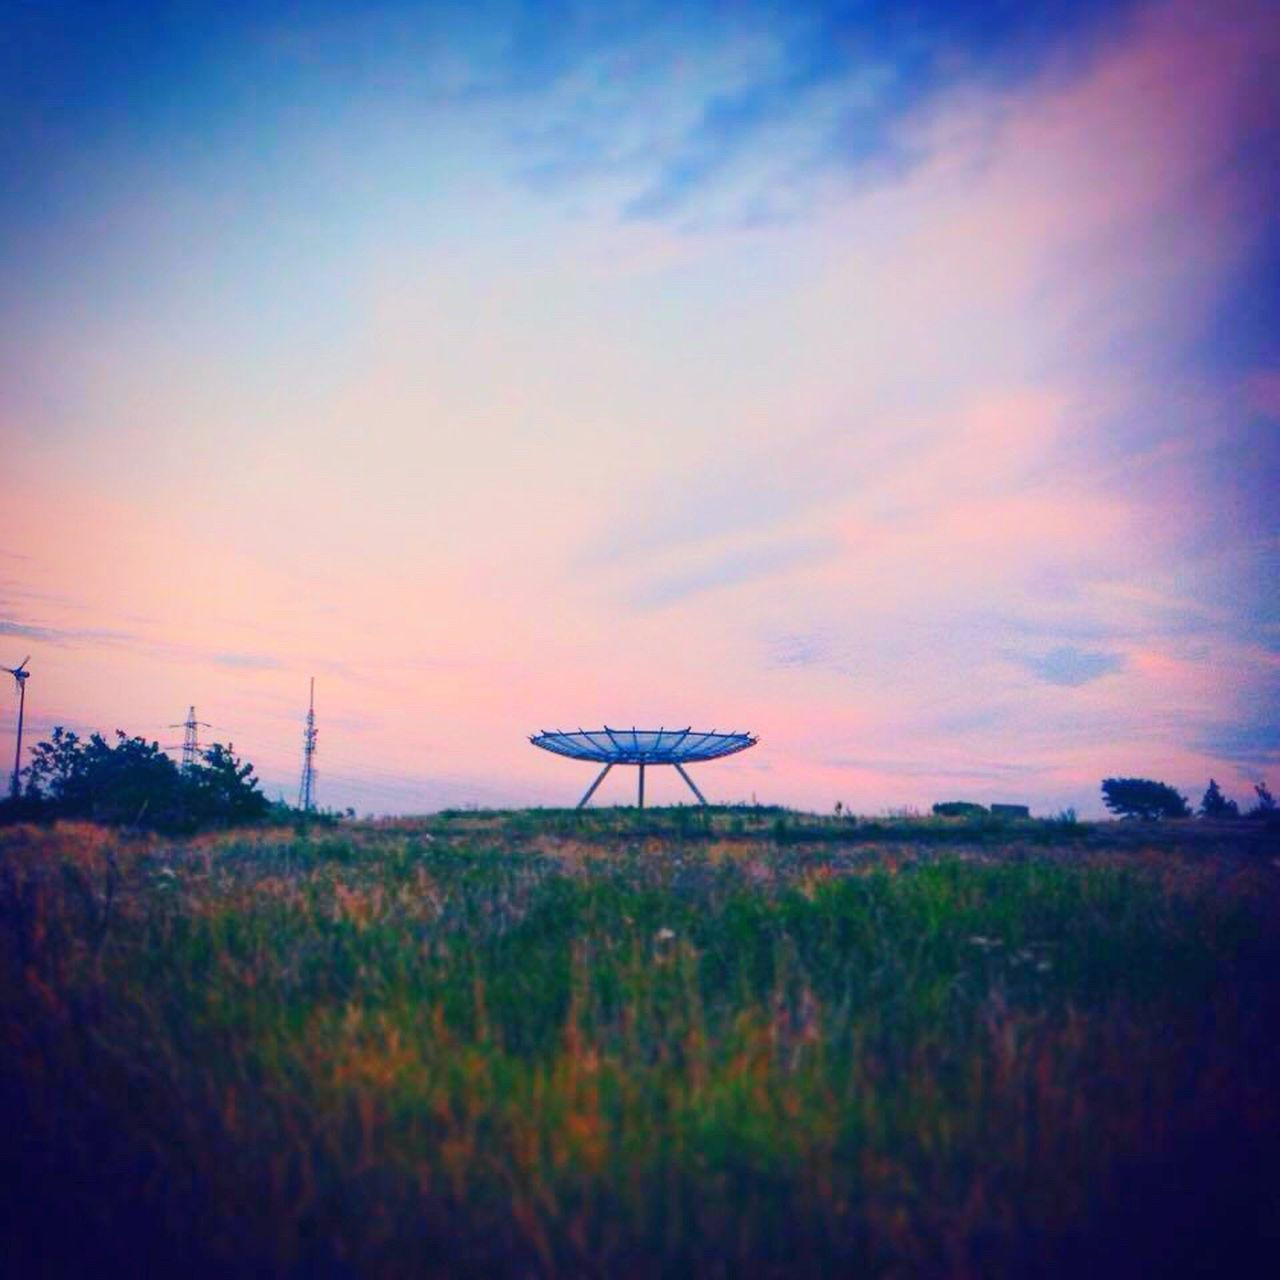 Picoftheday Haslingden Halo Rossendale Panopticon Landscape_photography Structure And Nature Taking Photos Clouds And Sky Colors Beautiful Day SpaceShip Tranquil Scene